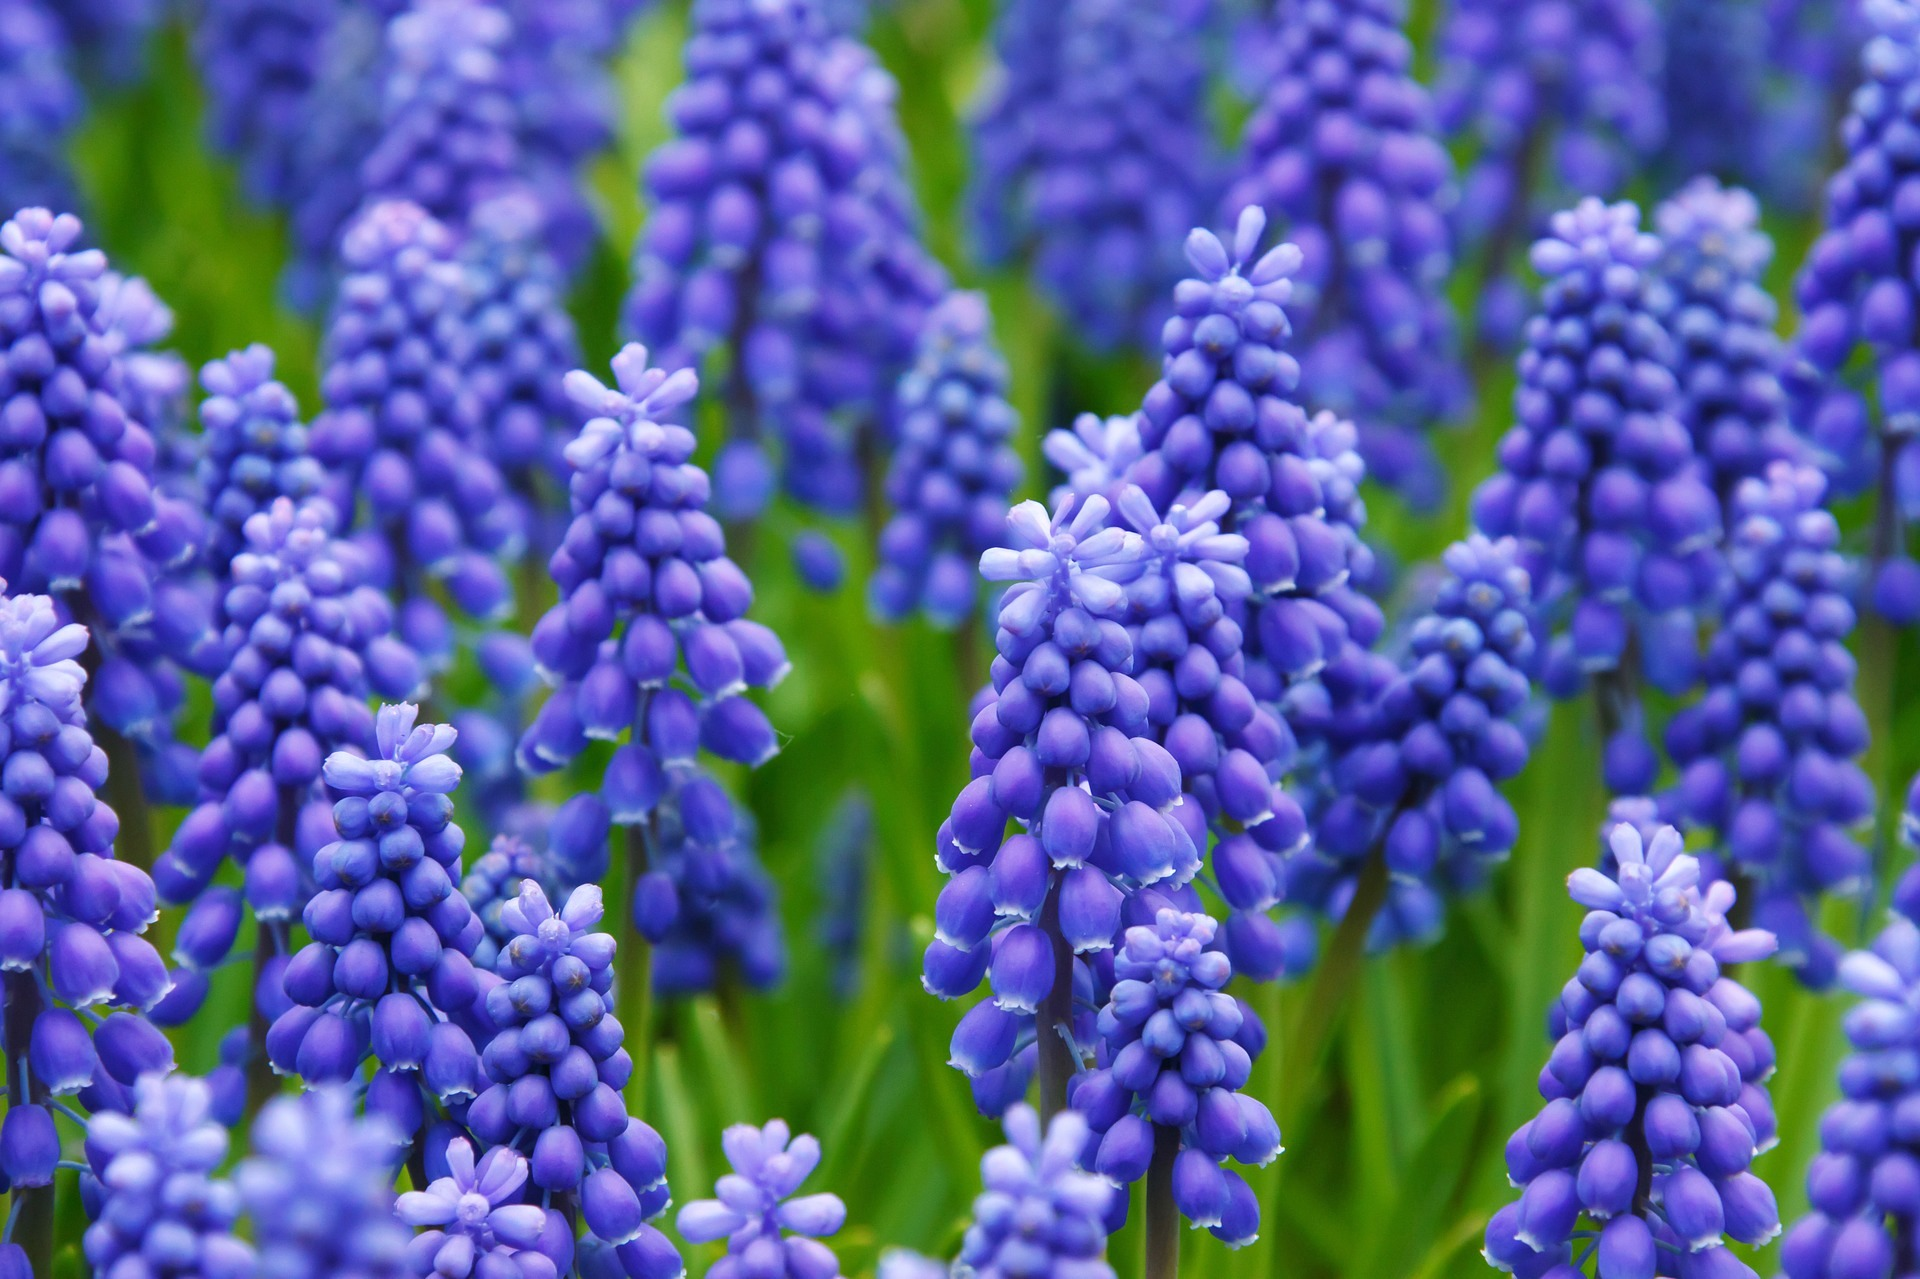 Top 10 most beautiful blue flowers in the world 2017 in the list of the top 10 most beautiful blue flowers in the world grape hyacinth flower is at no 7is is the 7th most beautiful blue flowers in the izmirmasajfo Gallery